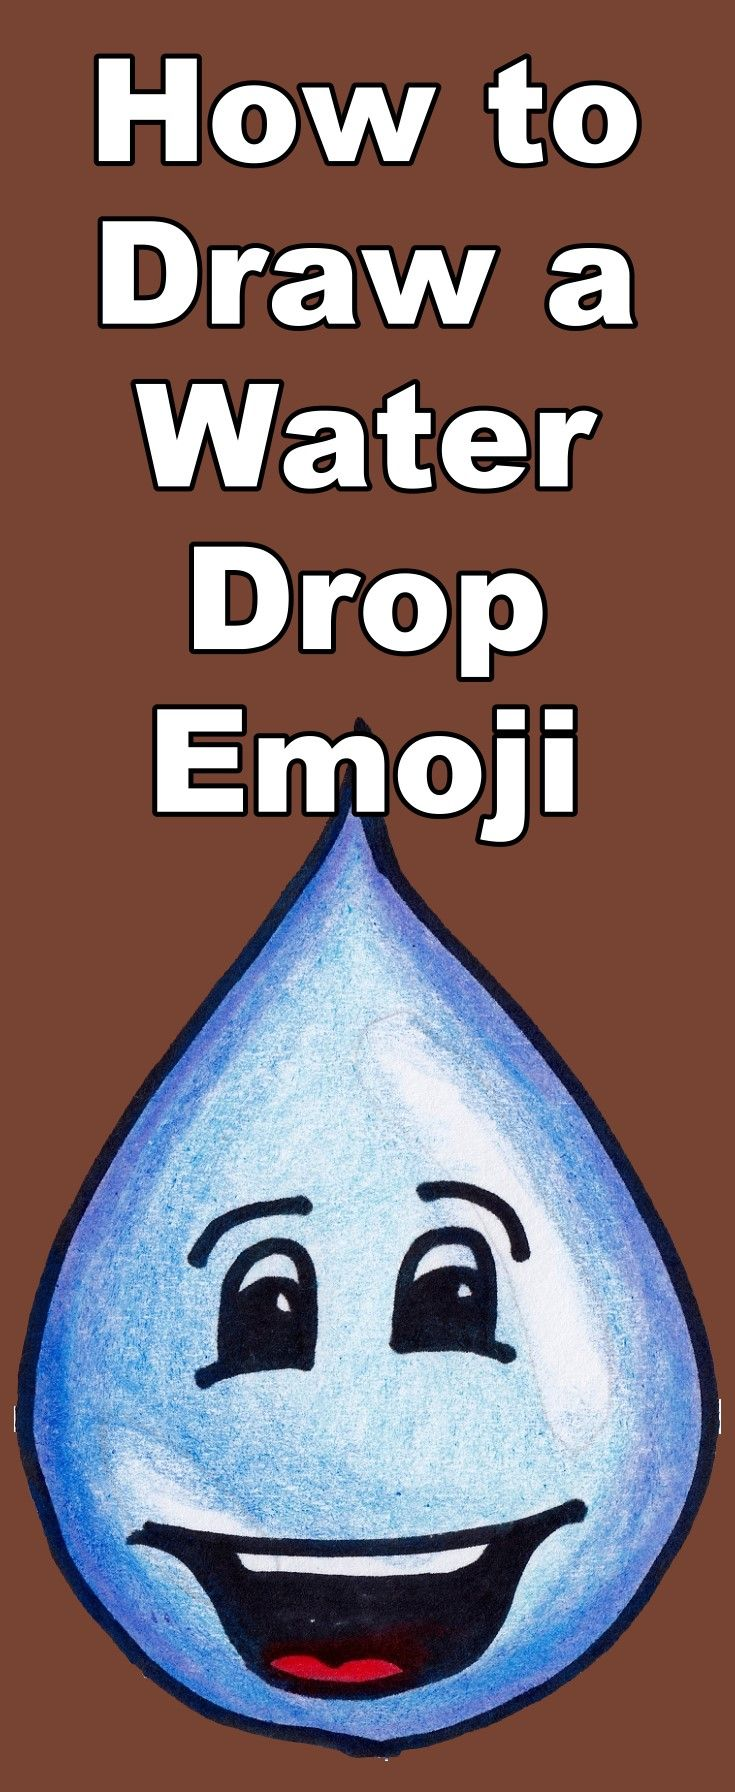 Learn how to draw a water drop emoji in this tutorial which includes a teaching video and coloring page download